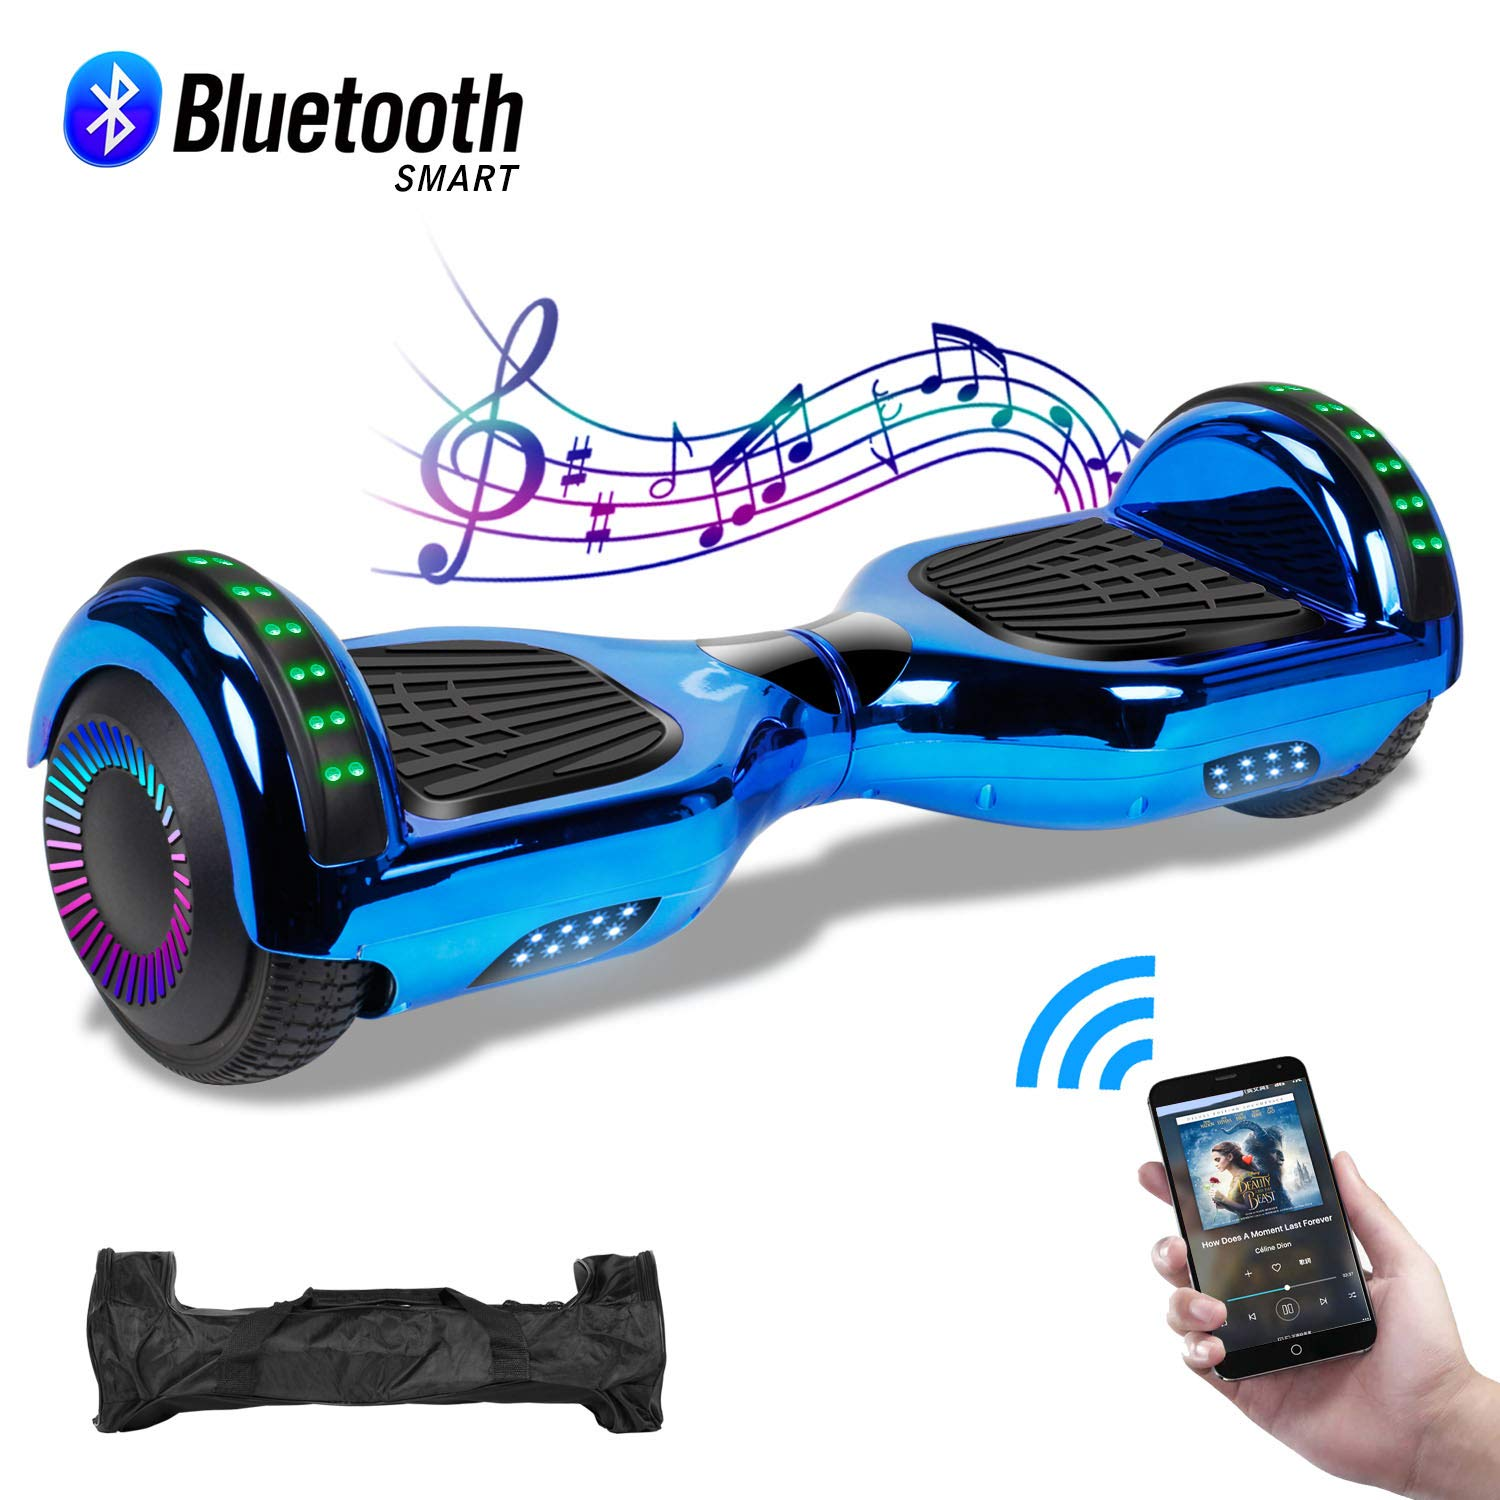 CBD 6.5'' Hoverboard with Bluetooth Speaker, Self Balancing Hoverboard for Kids with LED Lights, UL 2272 Certified, Chrome Blue by CBD